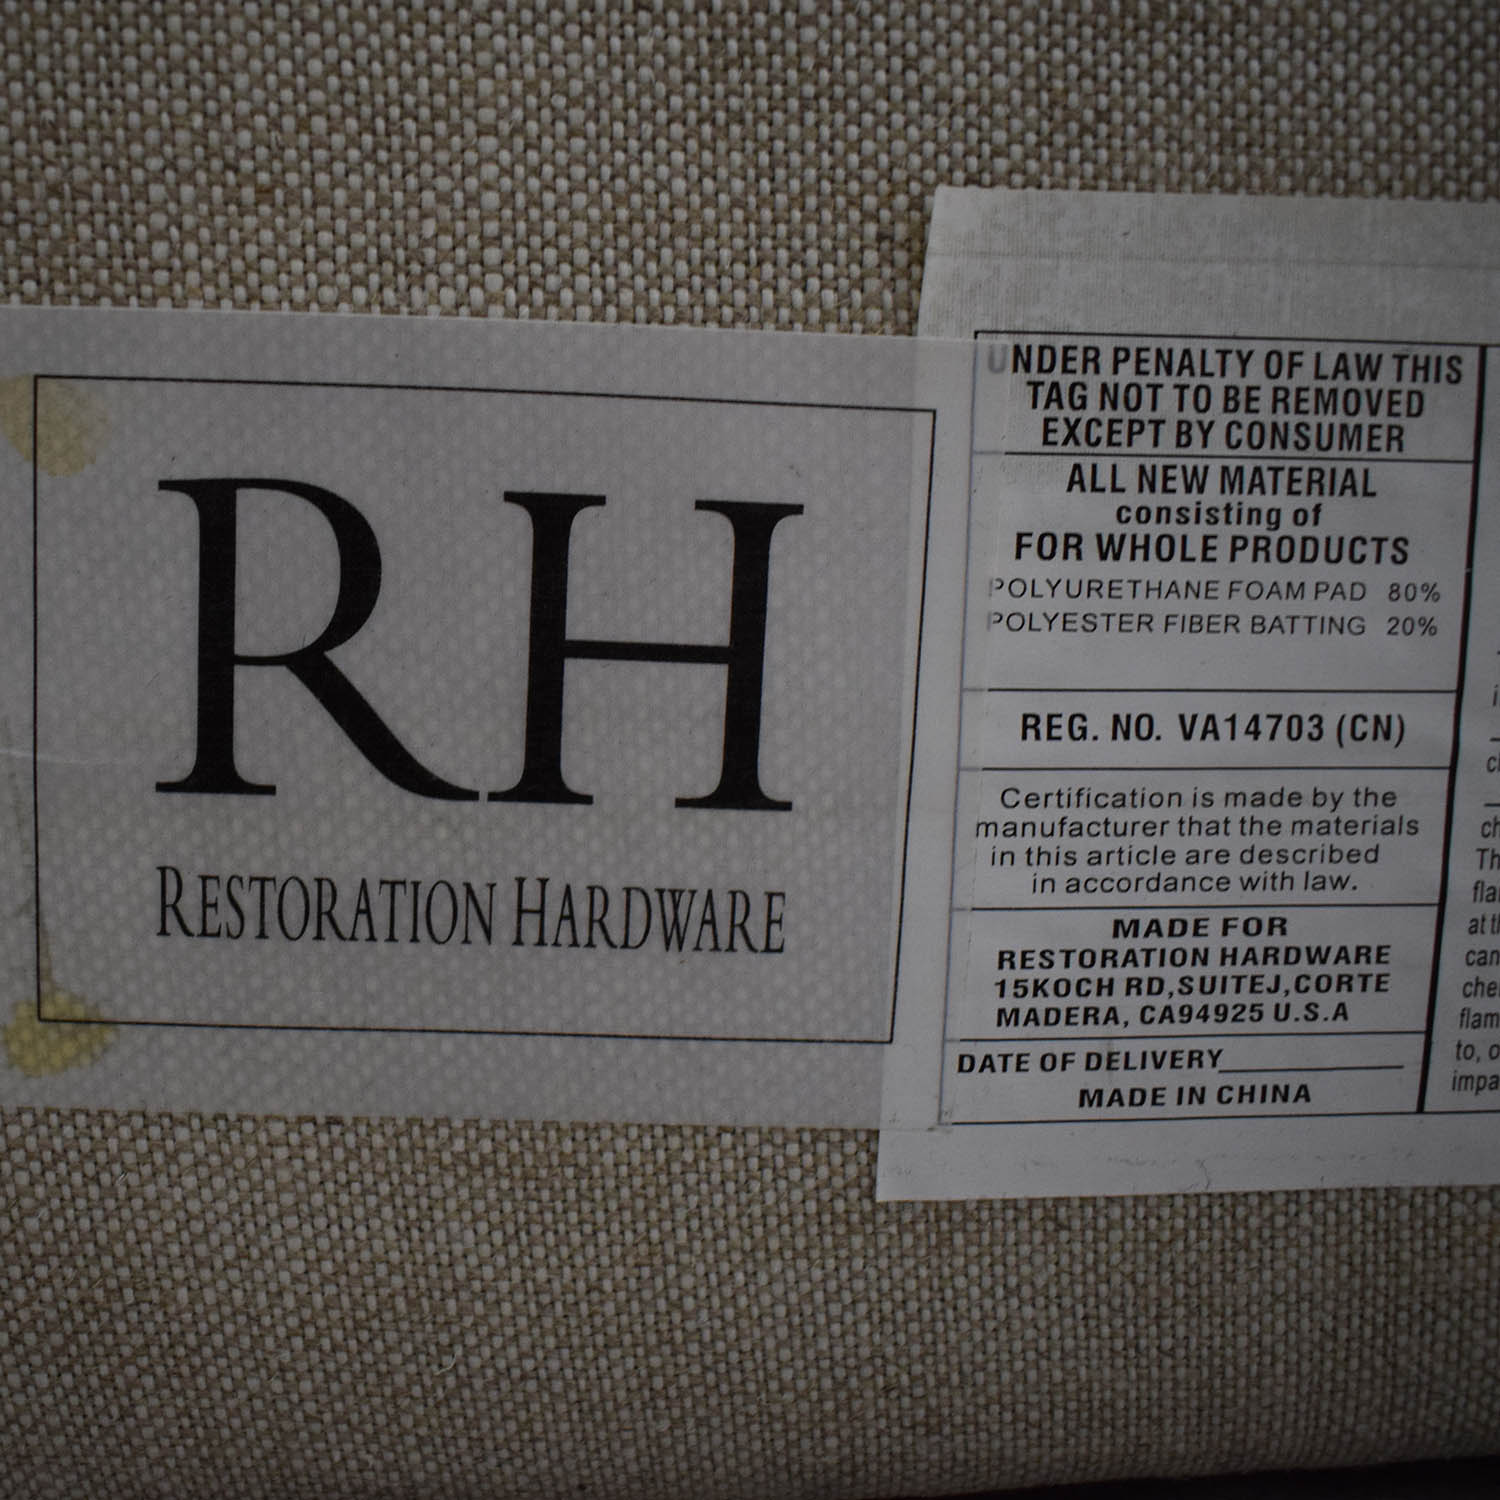 Restoration Hardware Restoration Hardware Chesterfield Fabric Panel Headboard nj